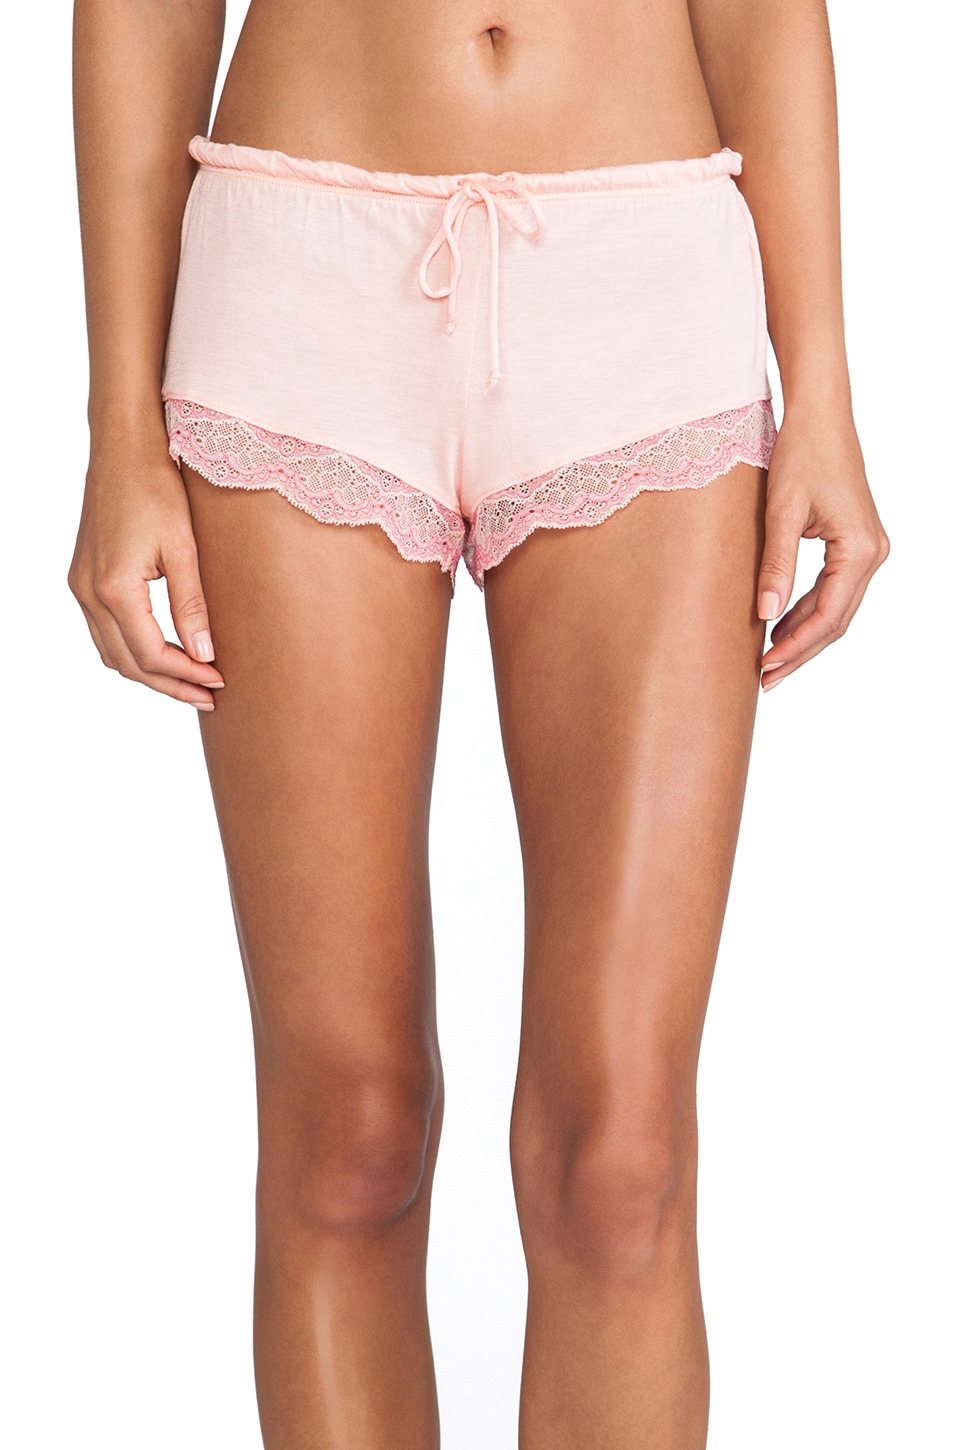 eberjey Millie Shorts in Melon Rose/Pink